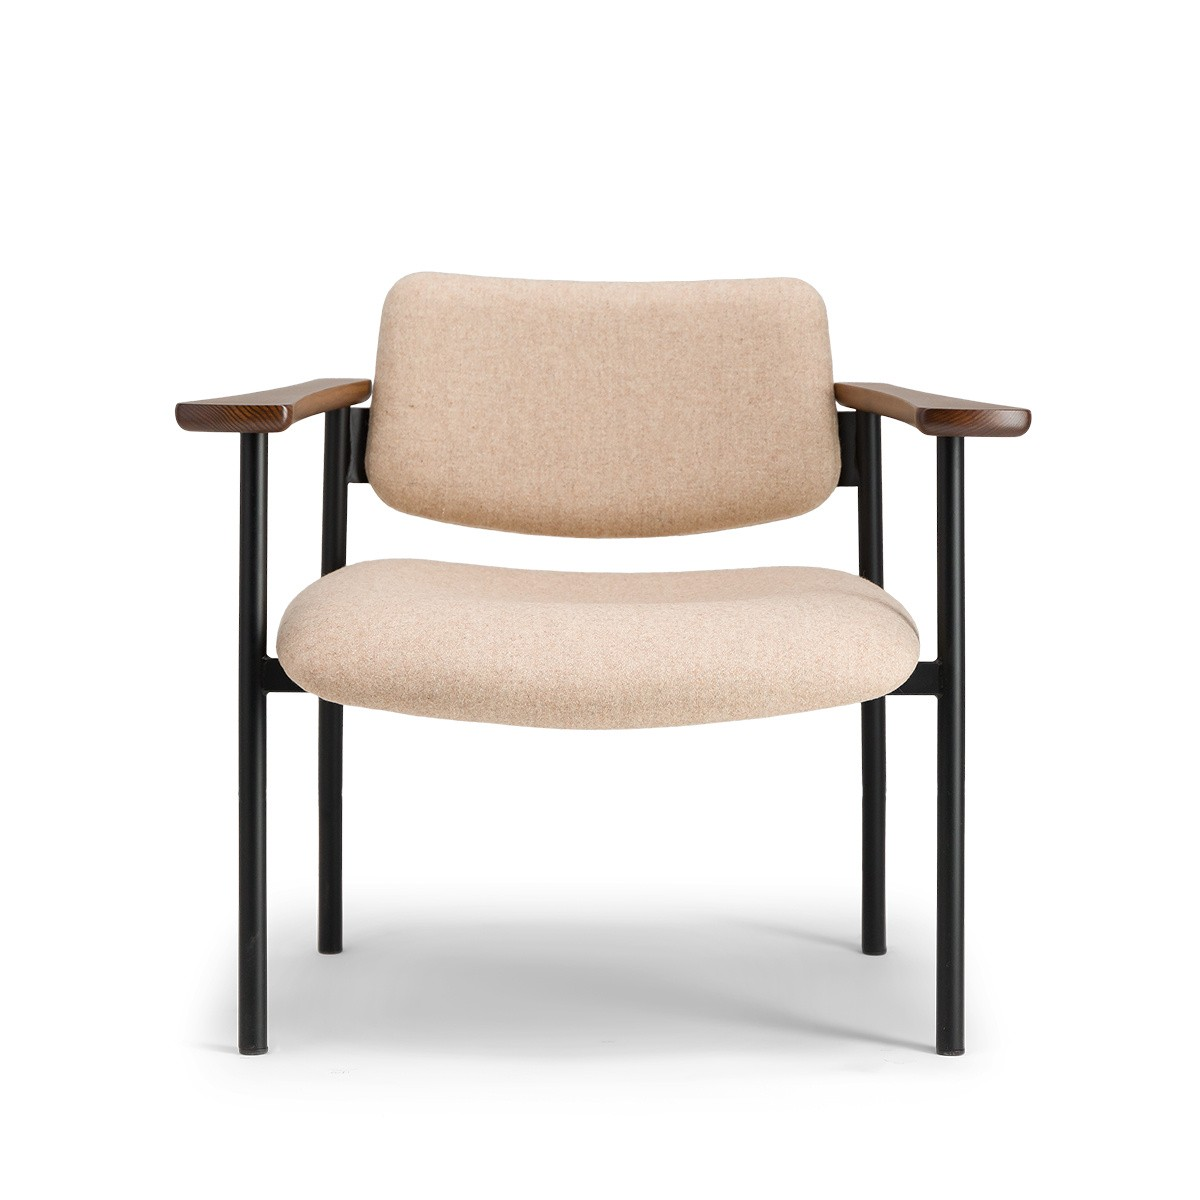 Pio armchair brown wood beige felt